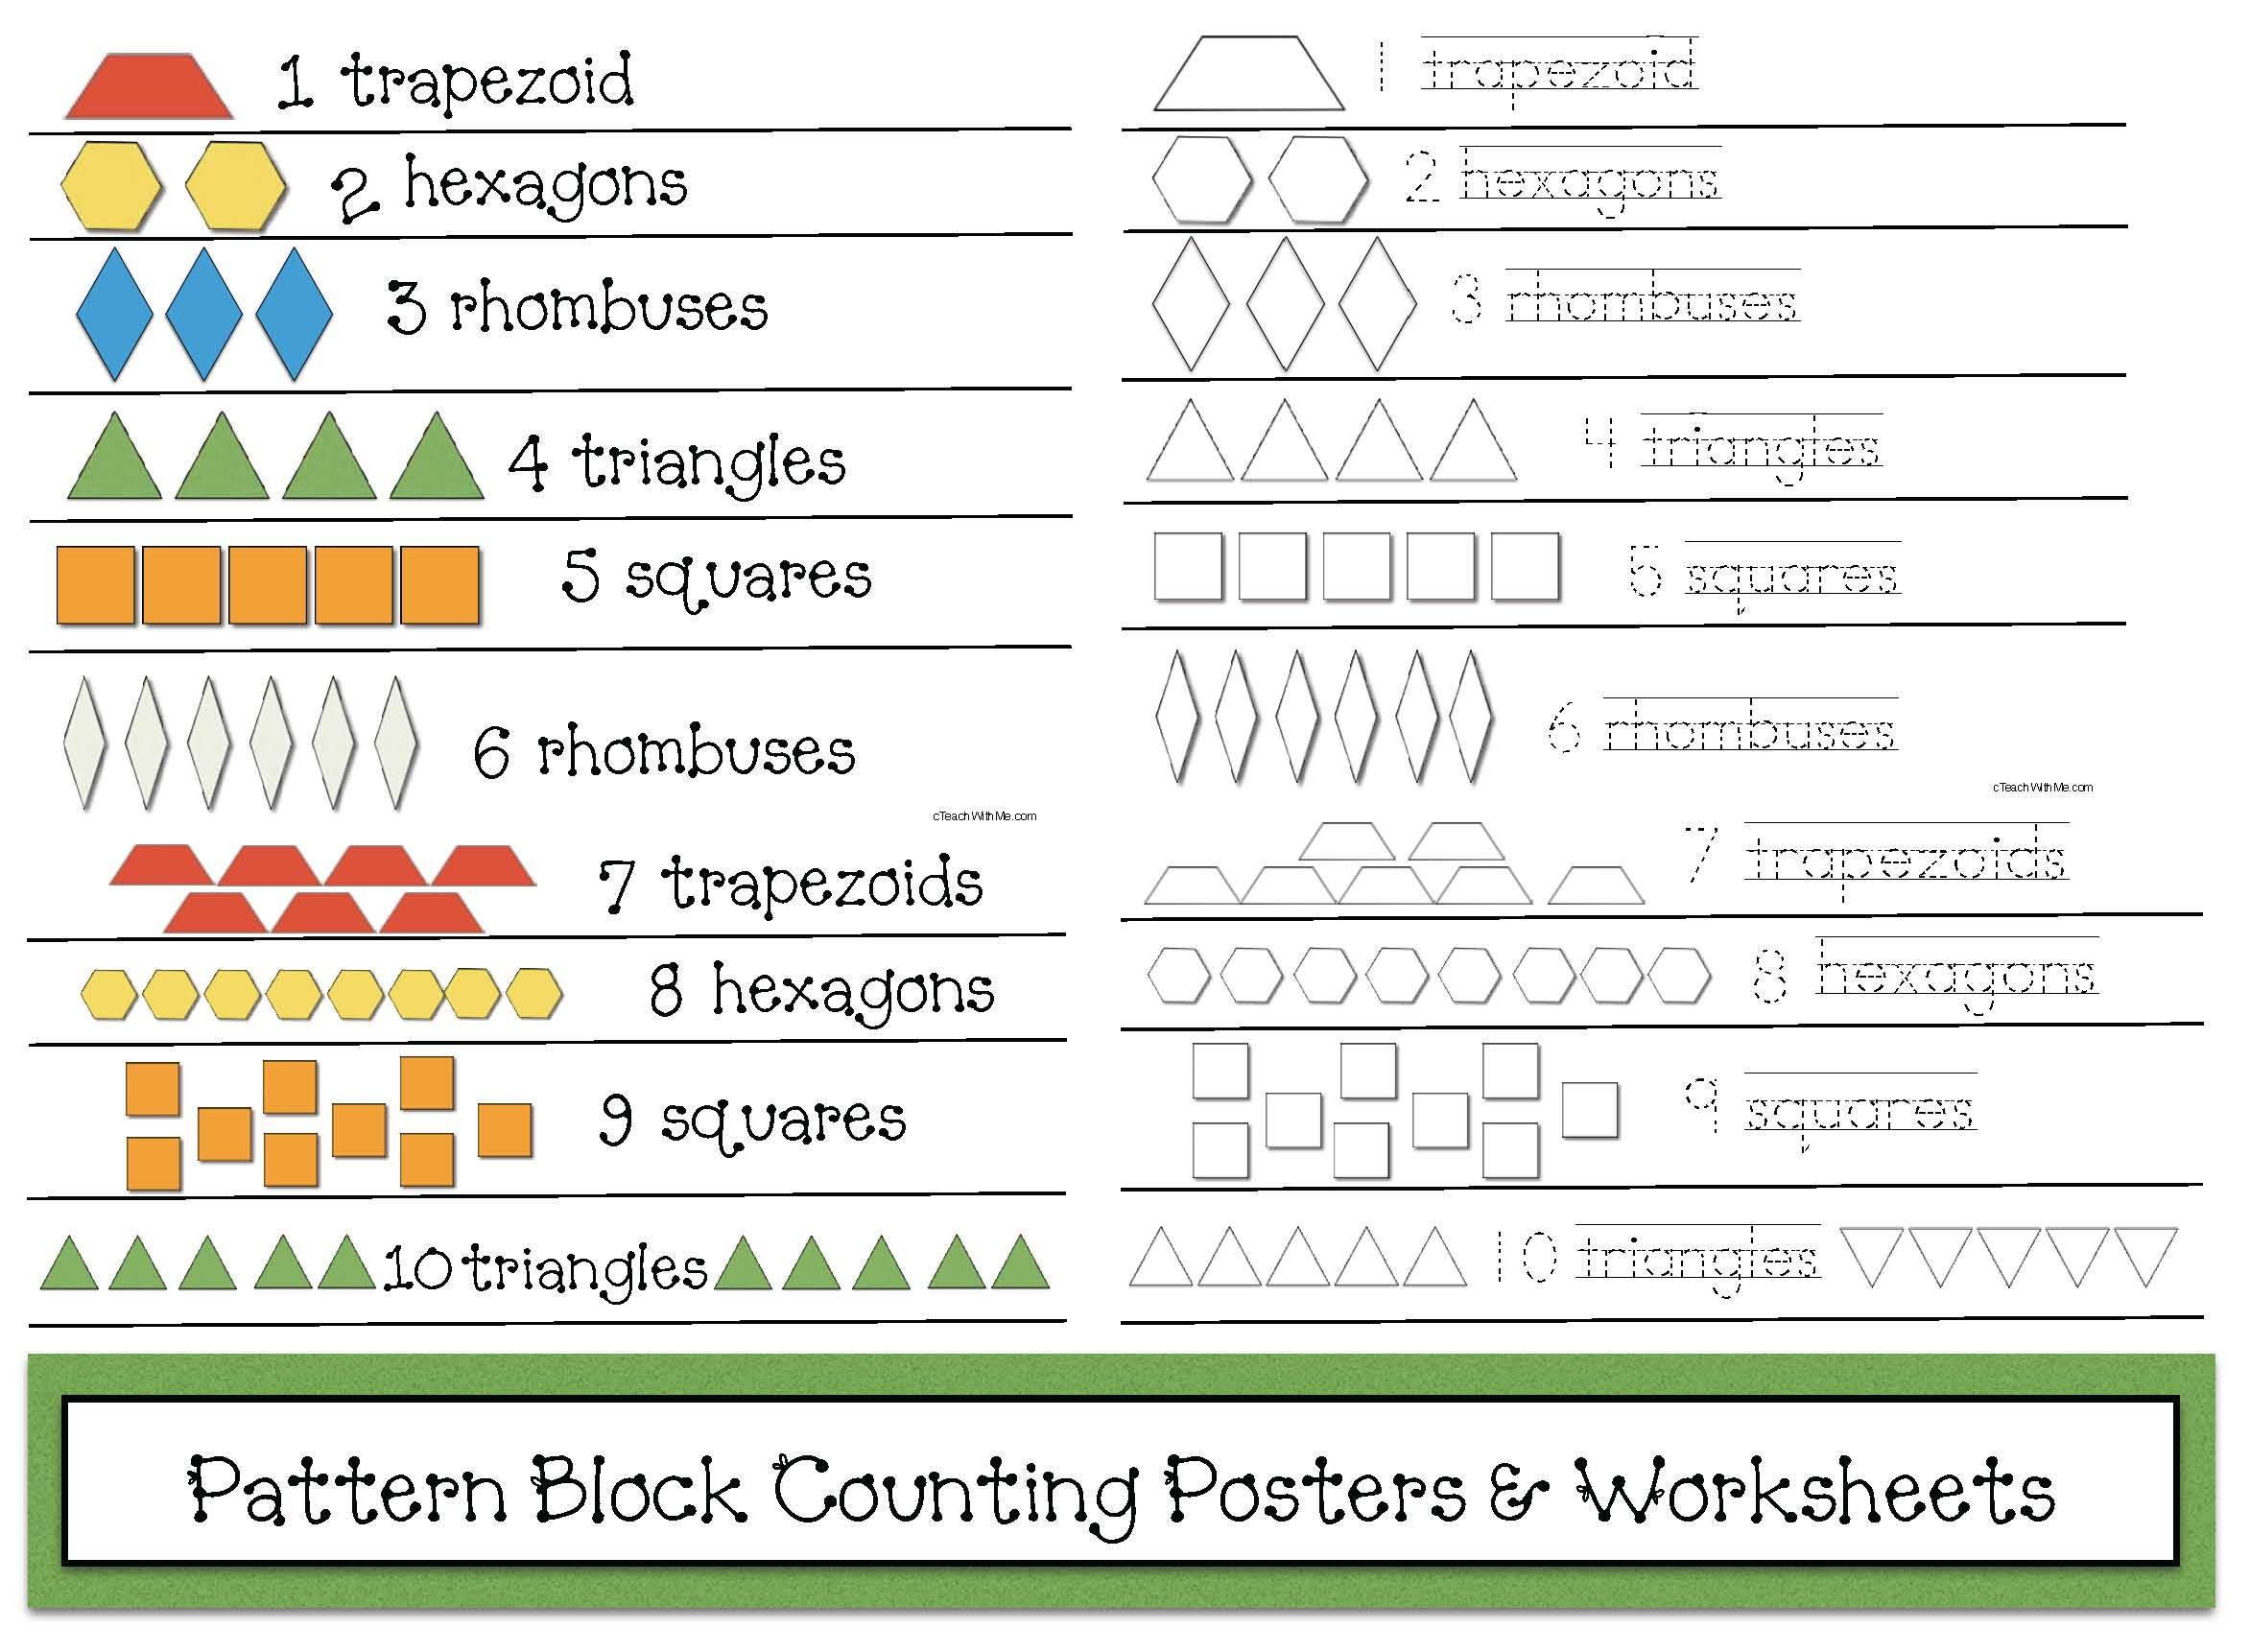 pattern blocks, pattern block stickers, pattern block activities, pattern block games, pattern block mats, 20 free pattern block mats, fractions with pattern blocks, pattern block pattern cards, pattern block alphabet cards, pattern block number cards, pattern block posters, pattern block math activities, shape activities, shape posters, traceable pattern blocks, pattern block templates